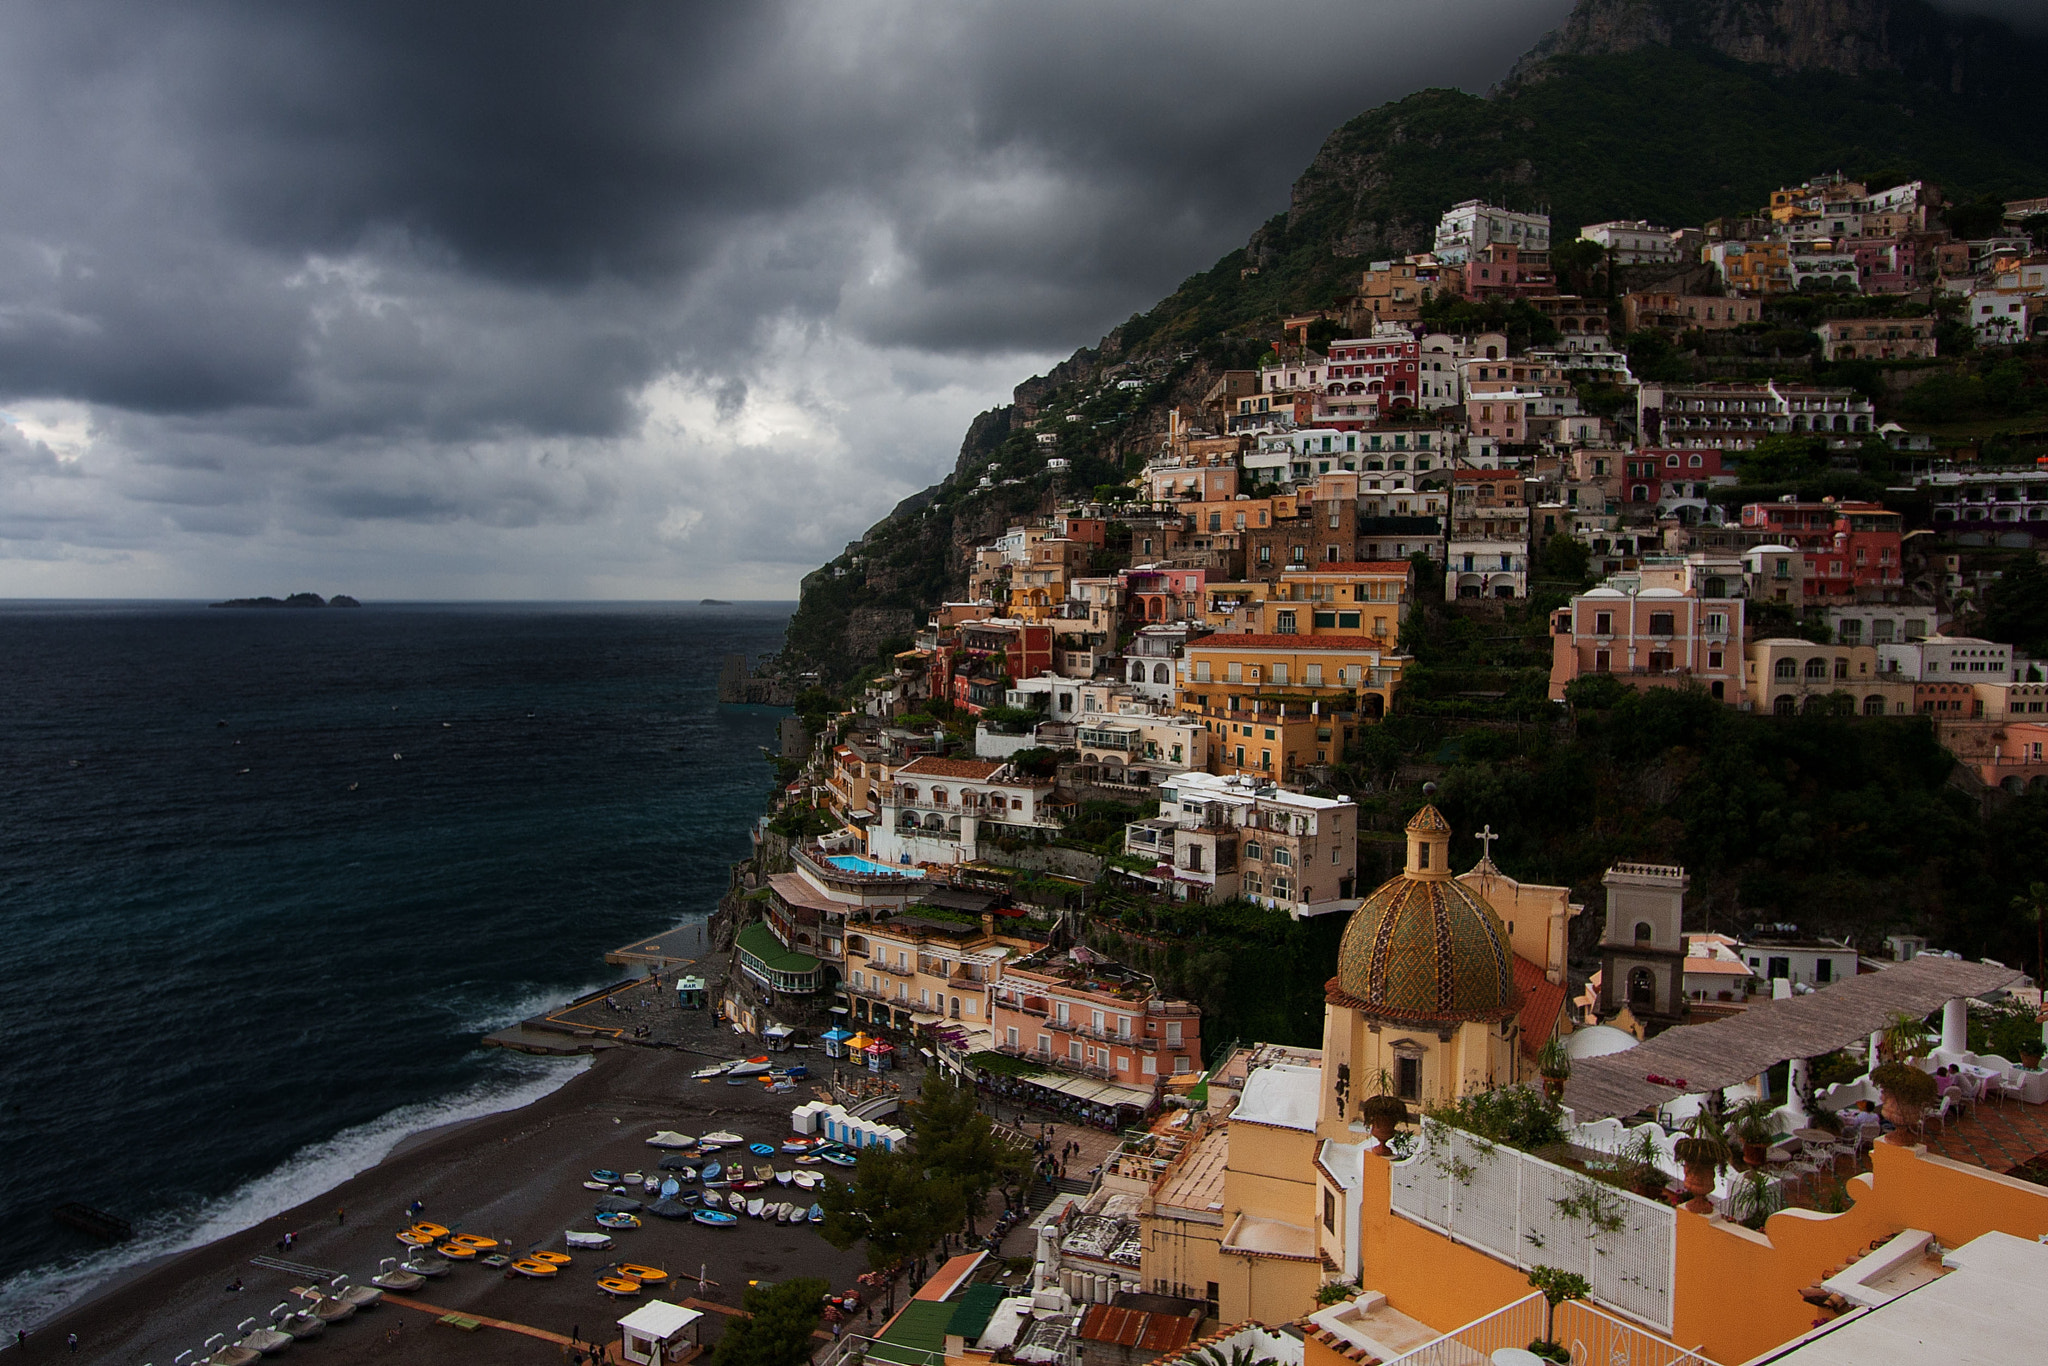 Photograph Positano under the rain by Giuseppe Mosca on 500px